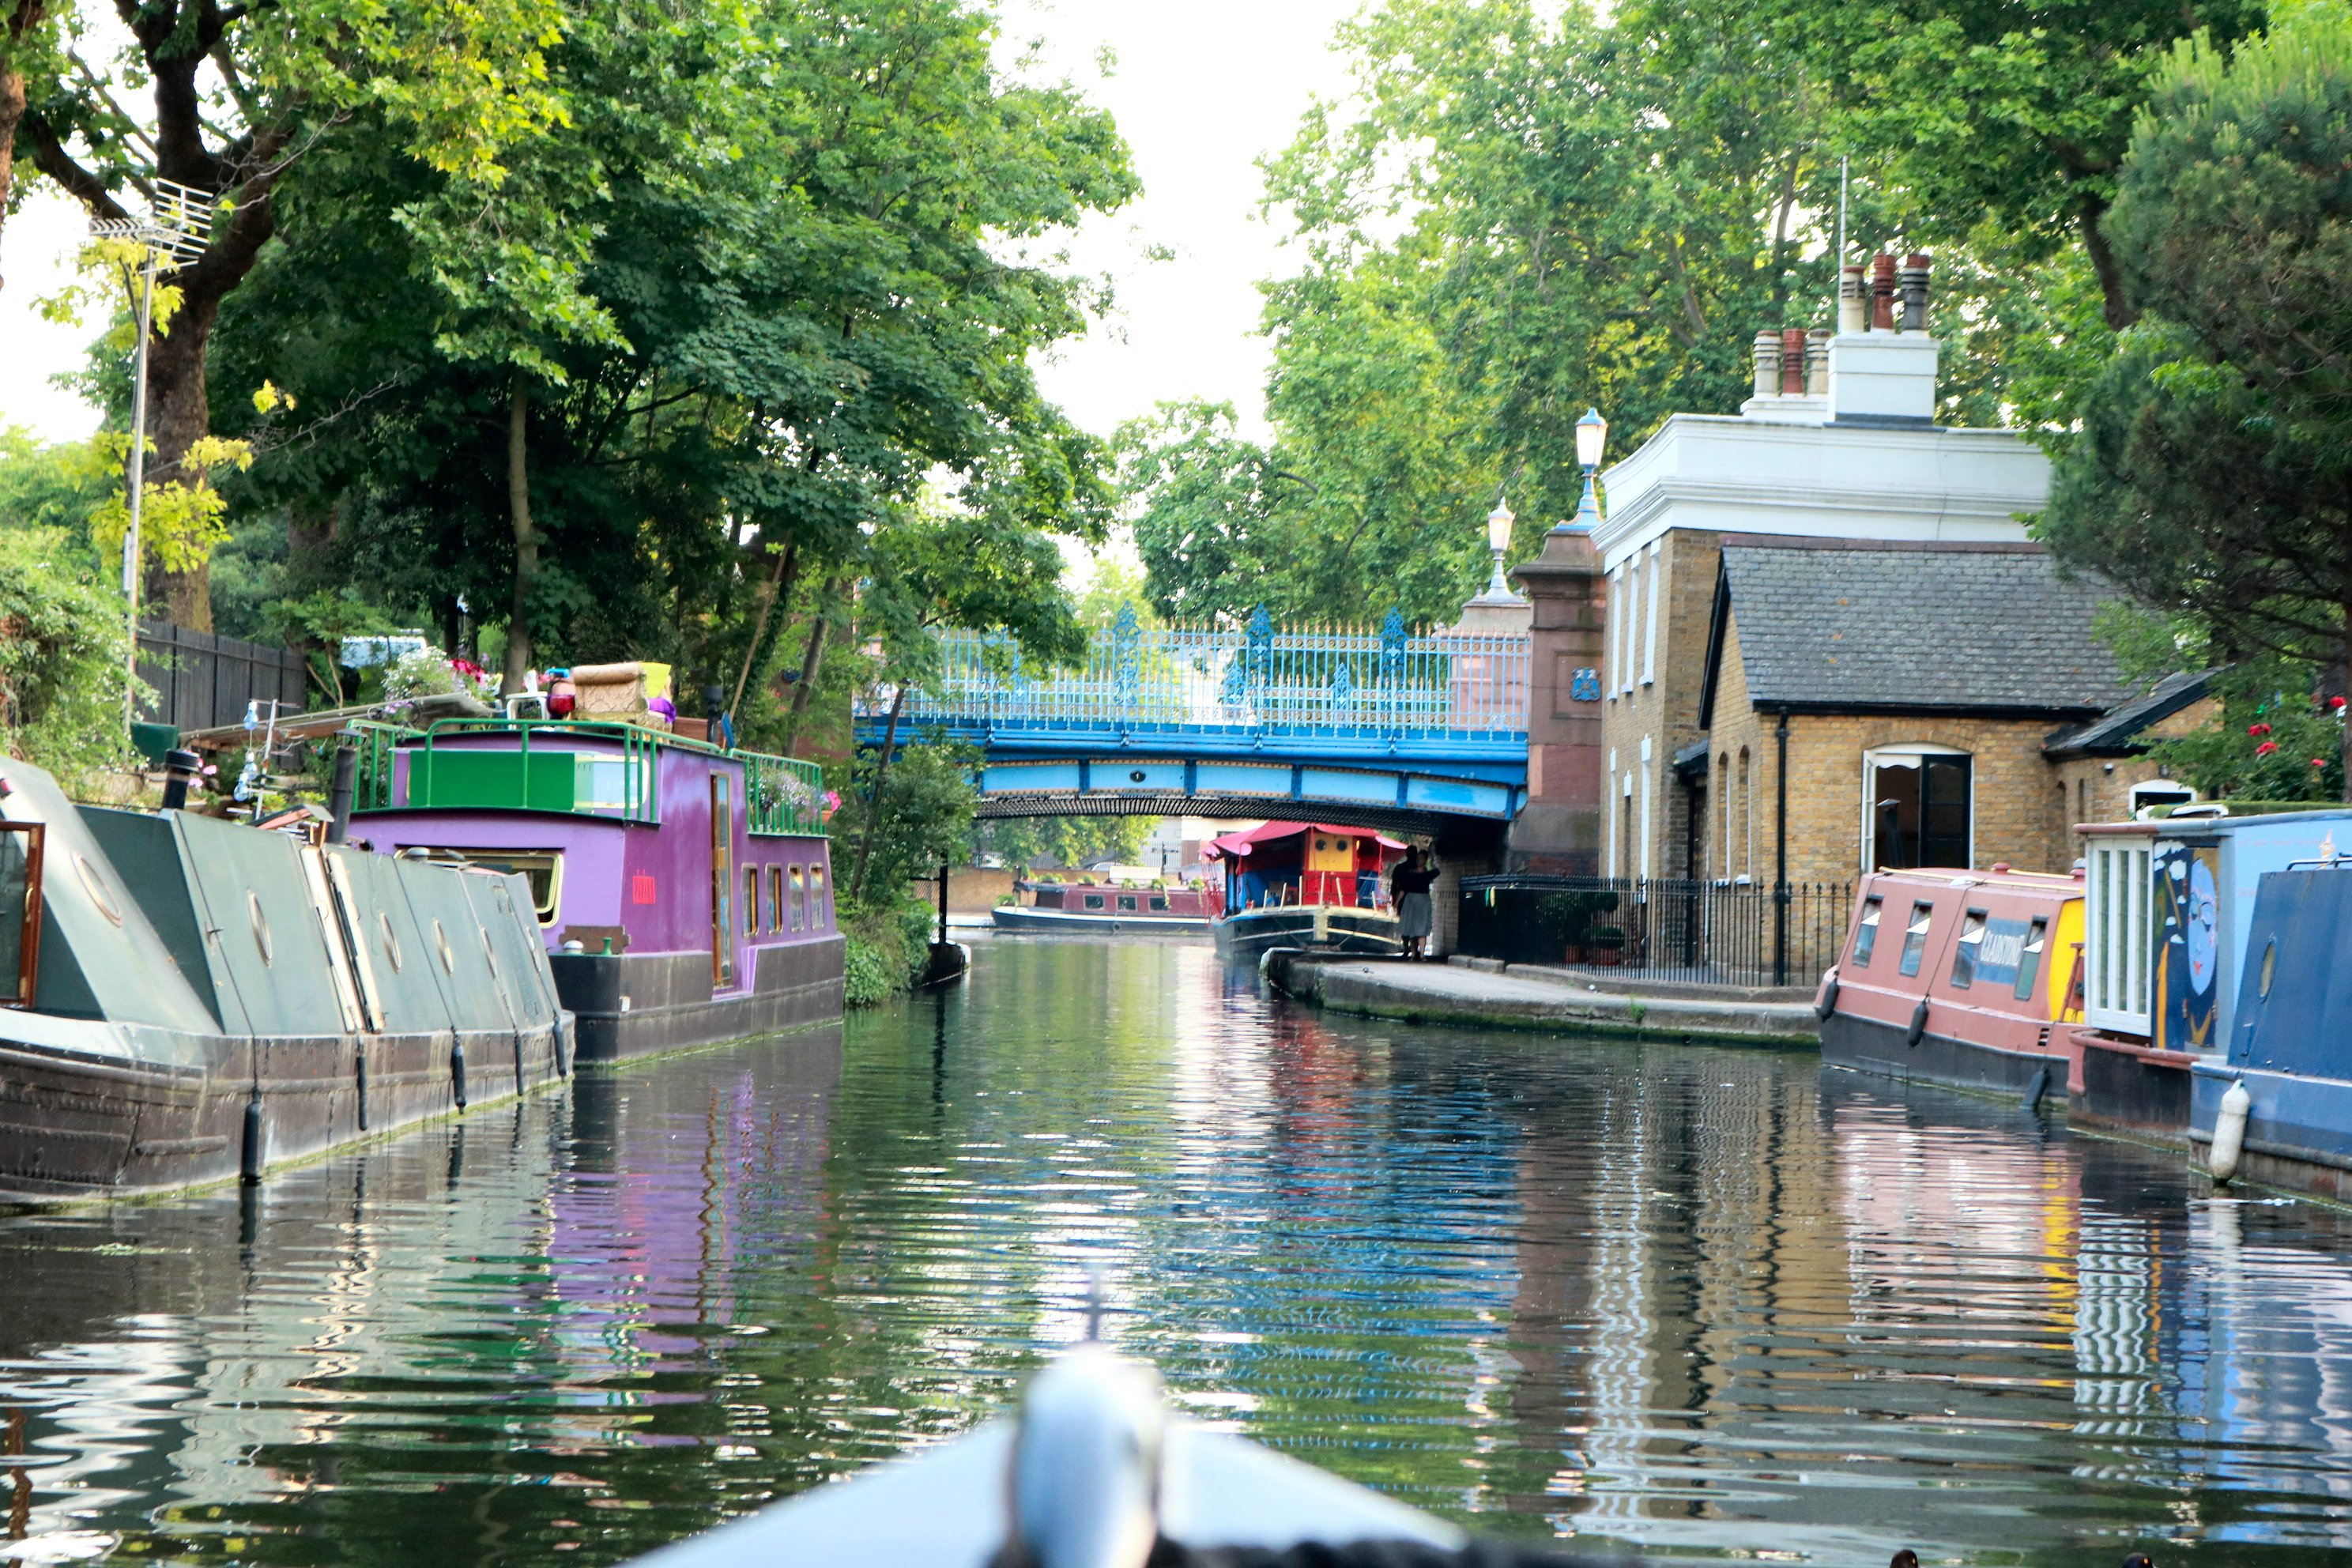 On the approach to Little Venice